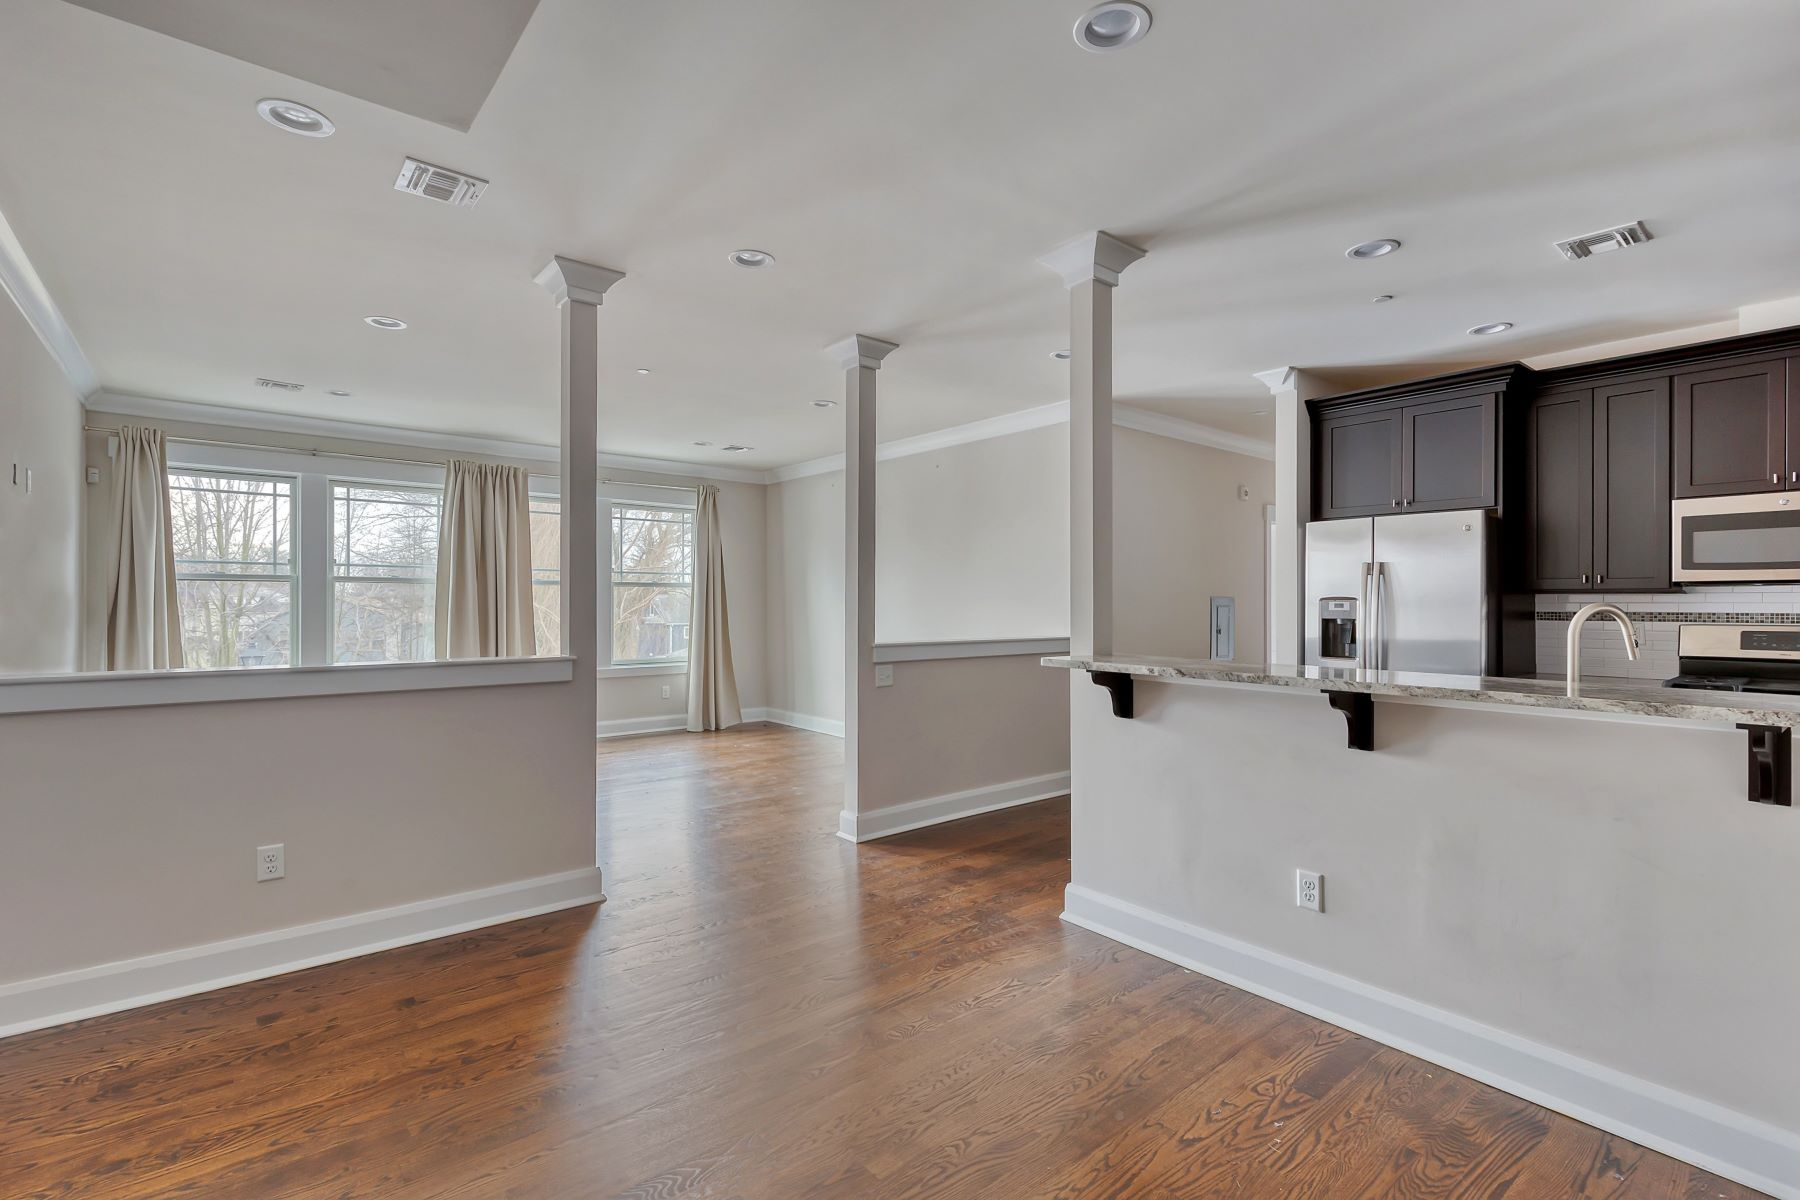 Flat for Rent at Best of Both Worlds! 296 Millburn Avenue Unit 201 Browns Mills, New Jersey 07041 United States